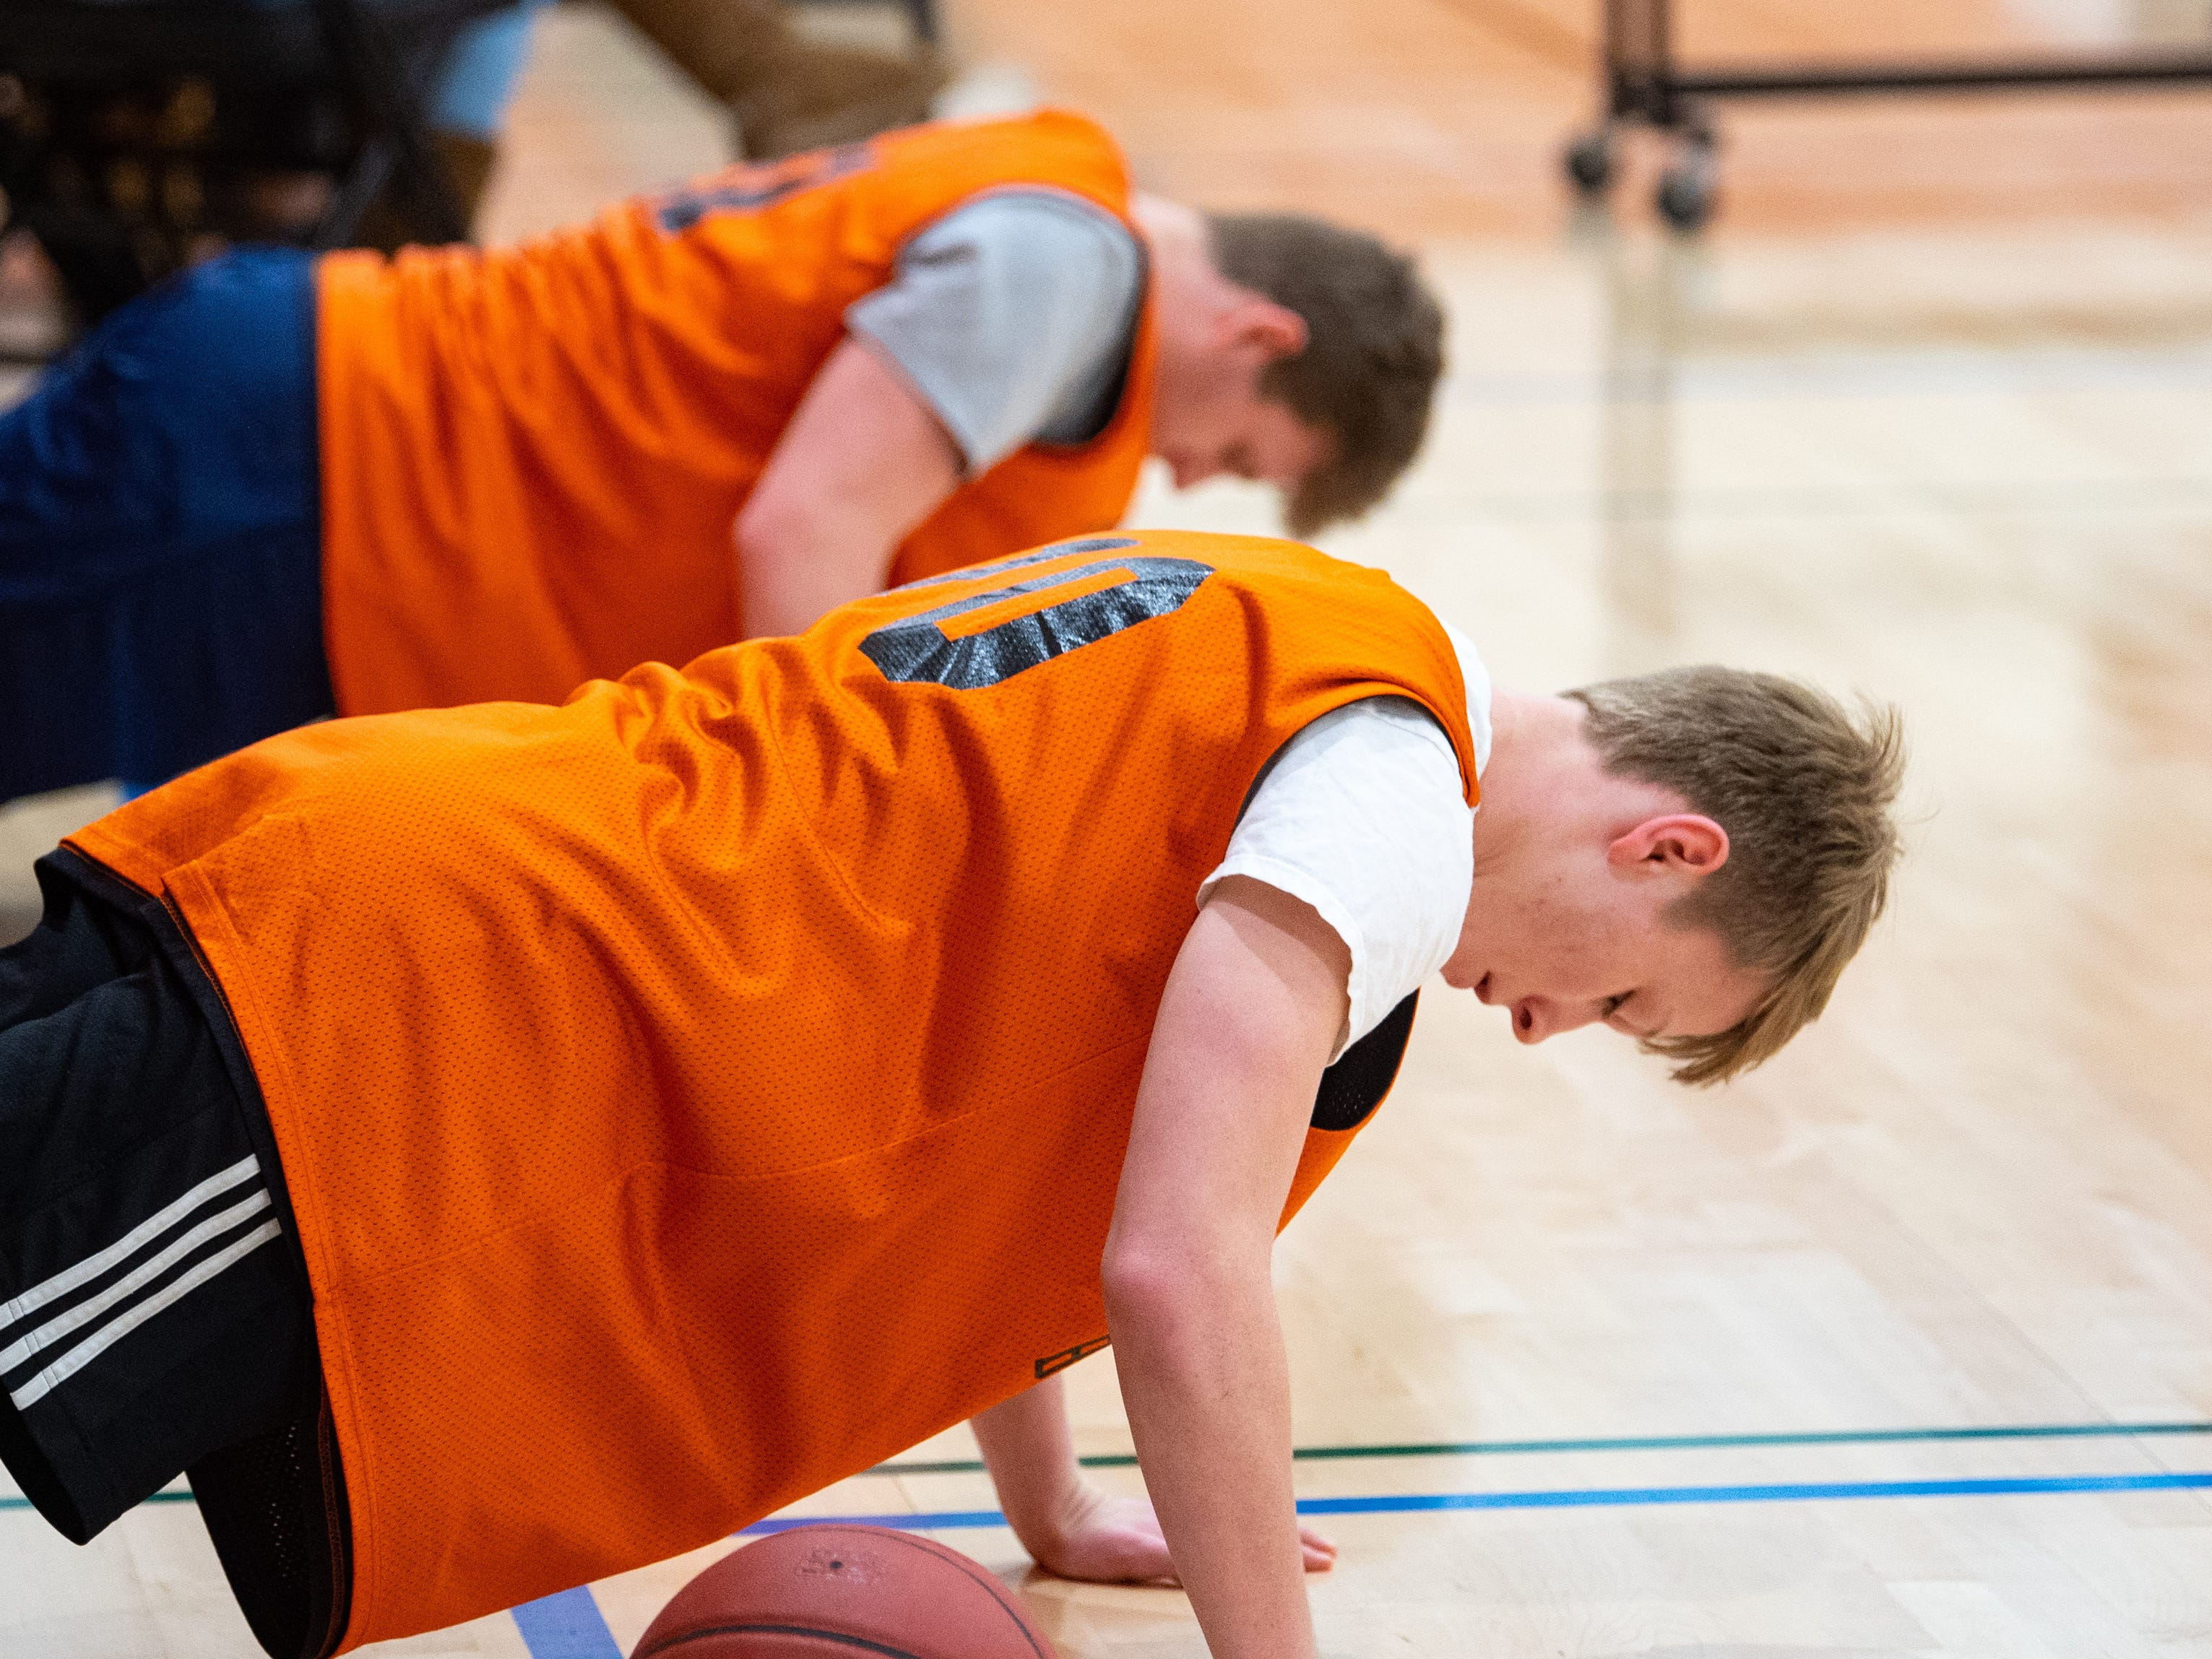 Central York's boys' basketball team builds their strength during practice, Wednesday, November 21, 2018.